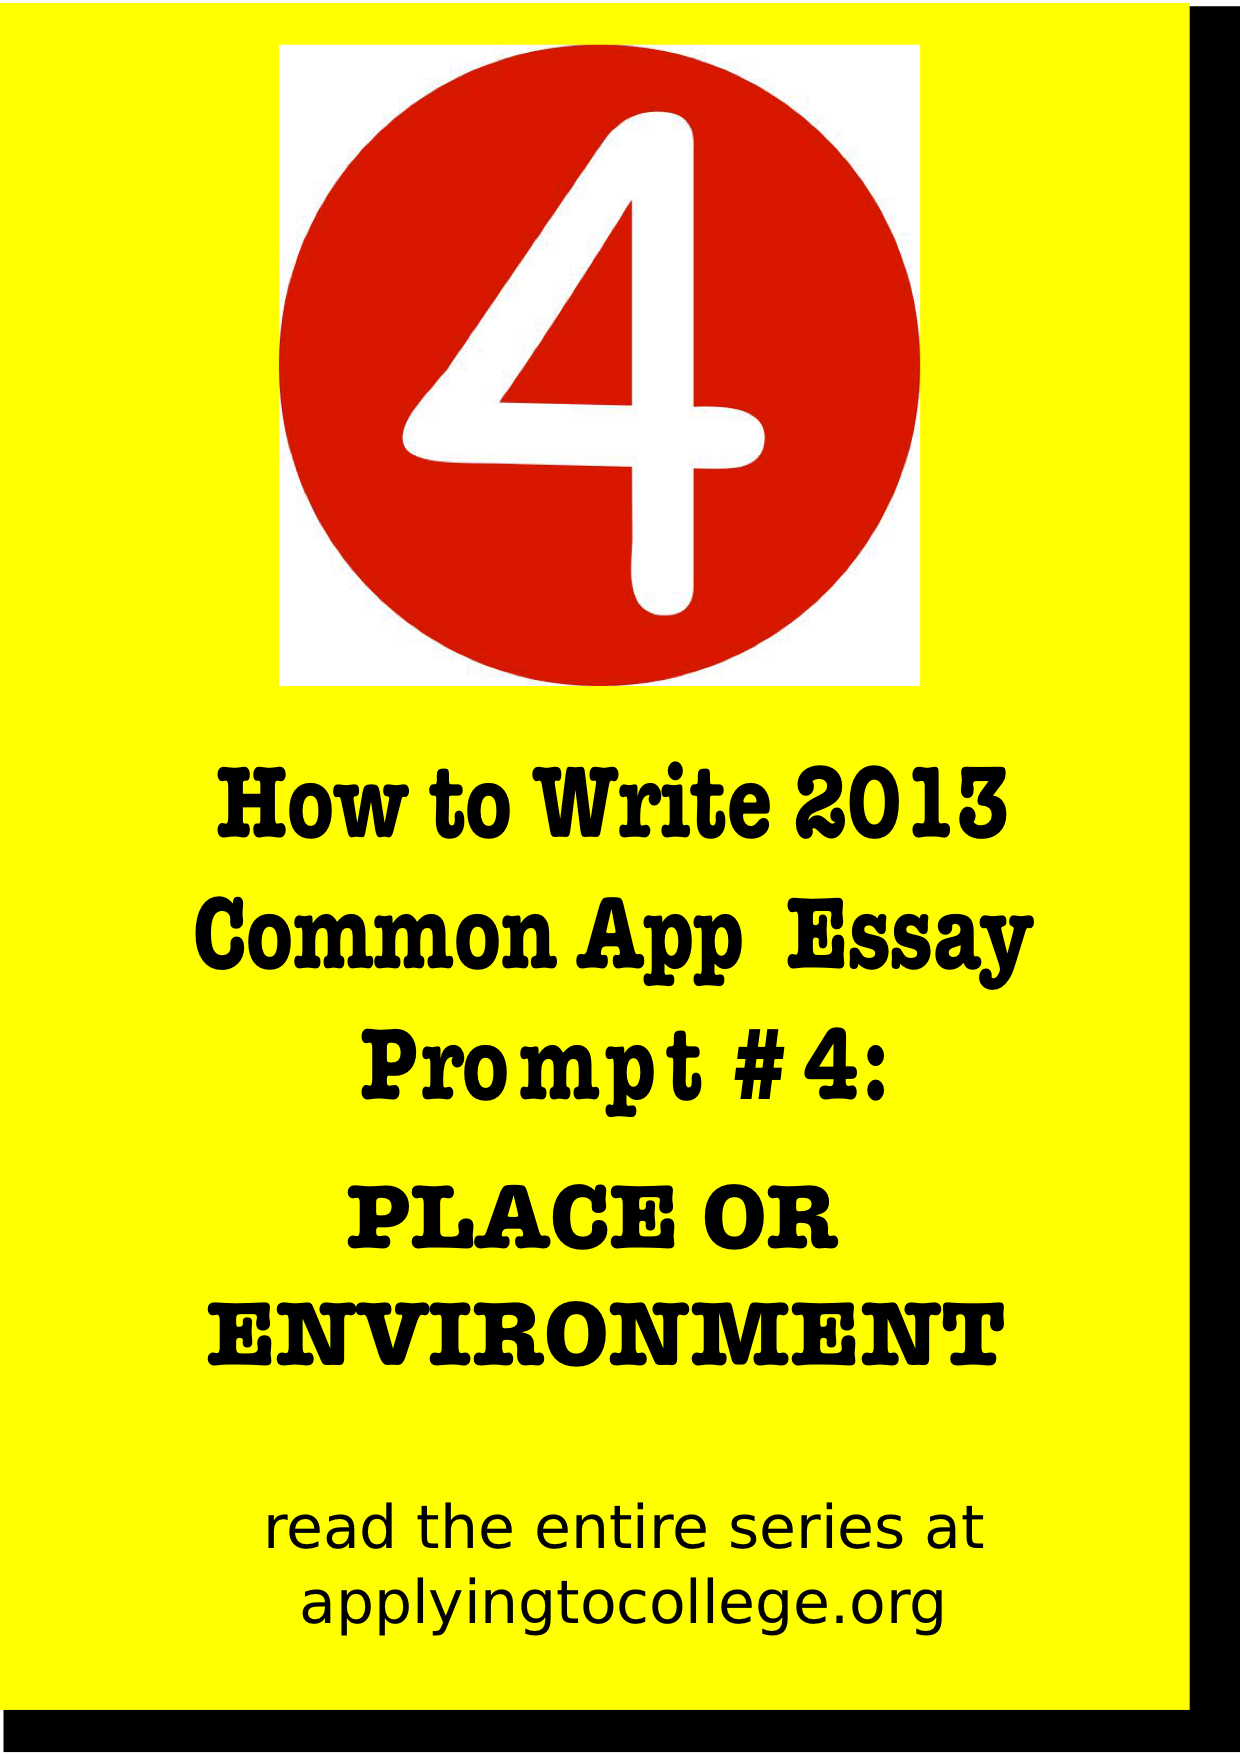 common app essay 2013 word limit